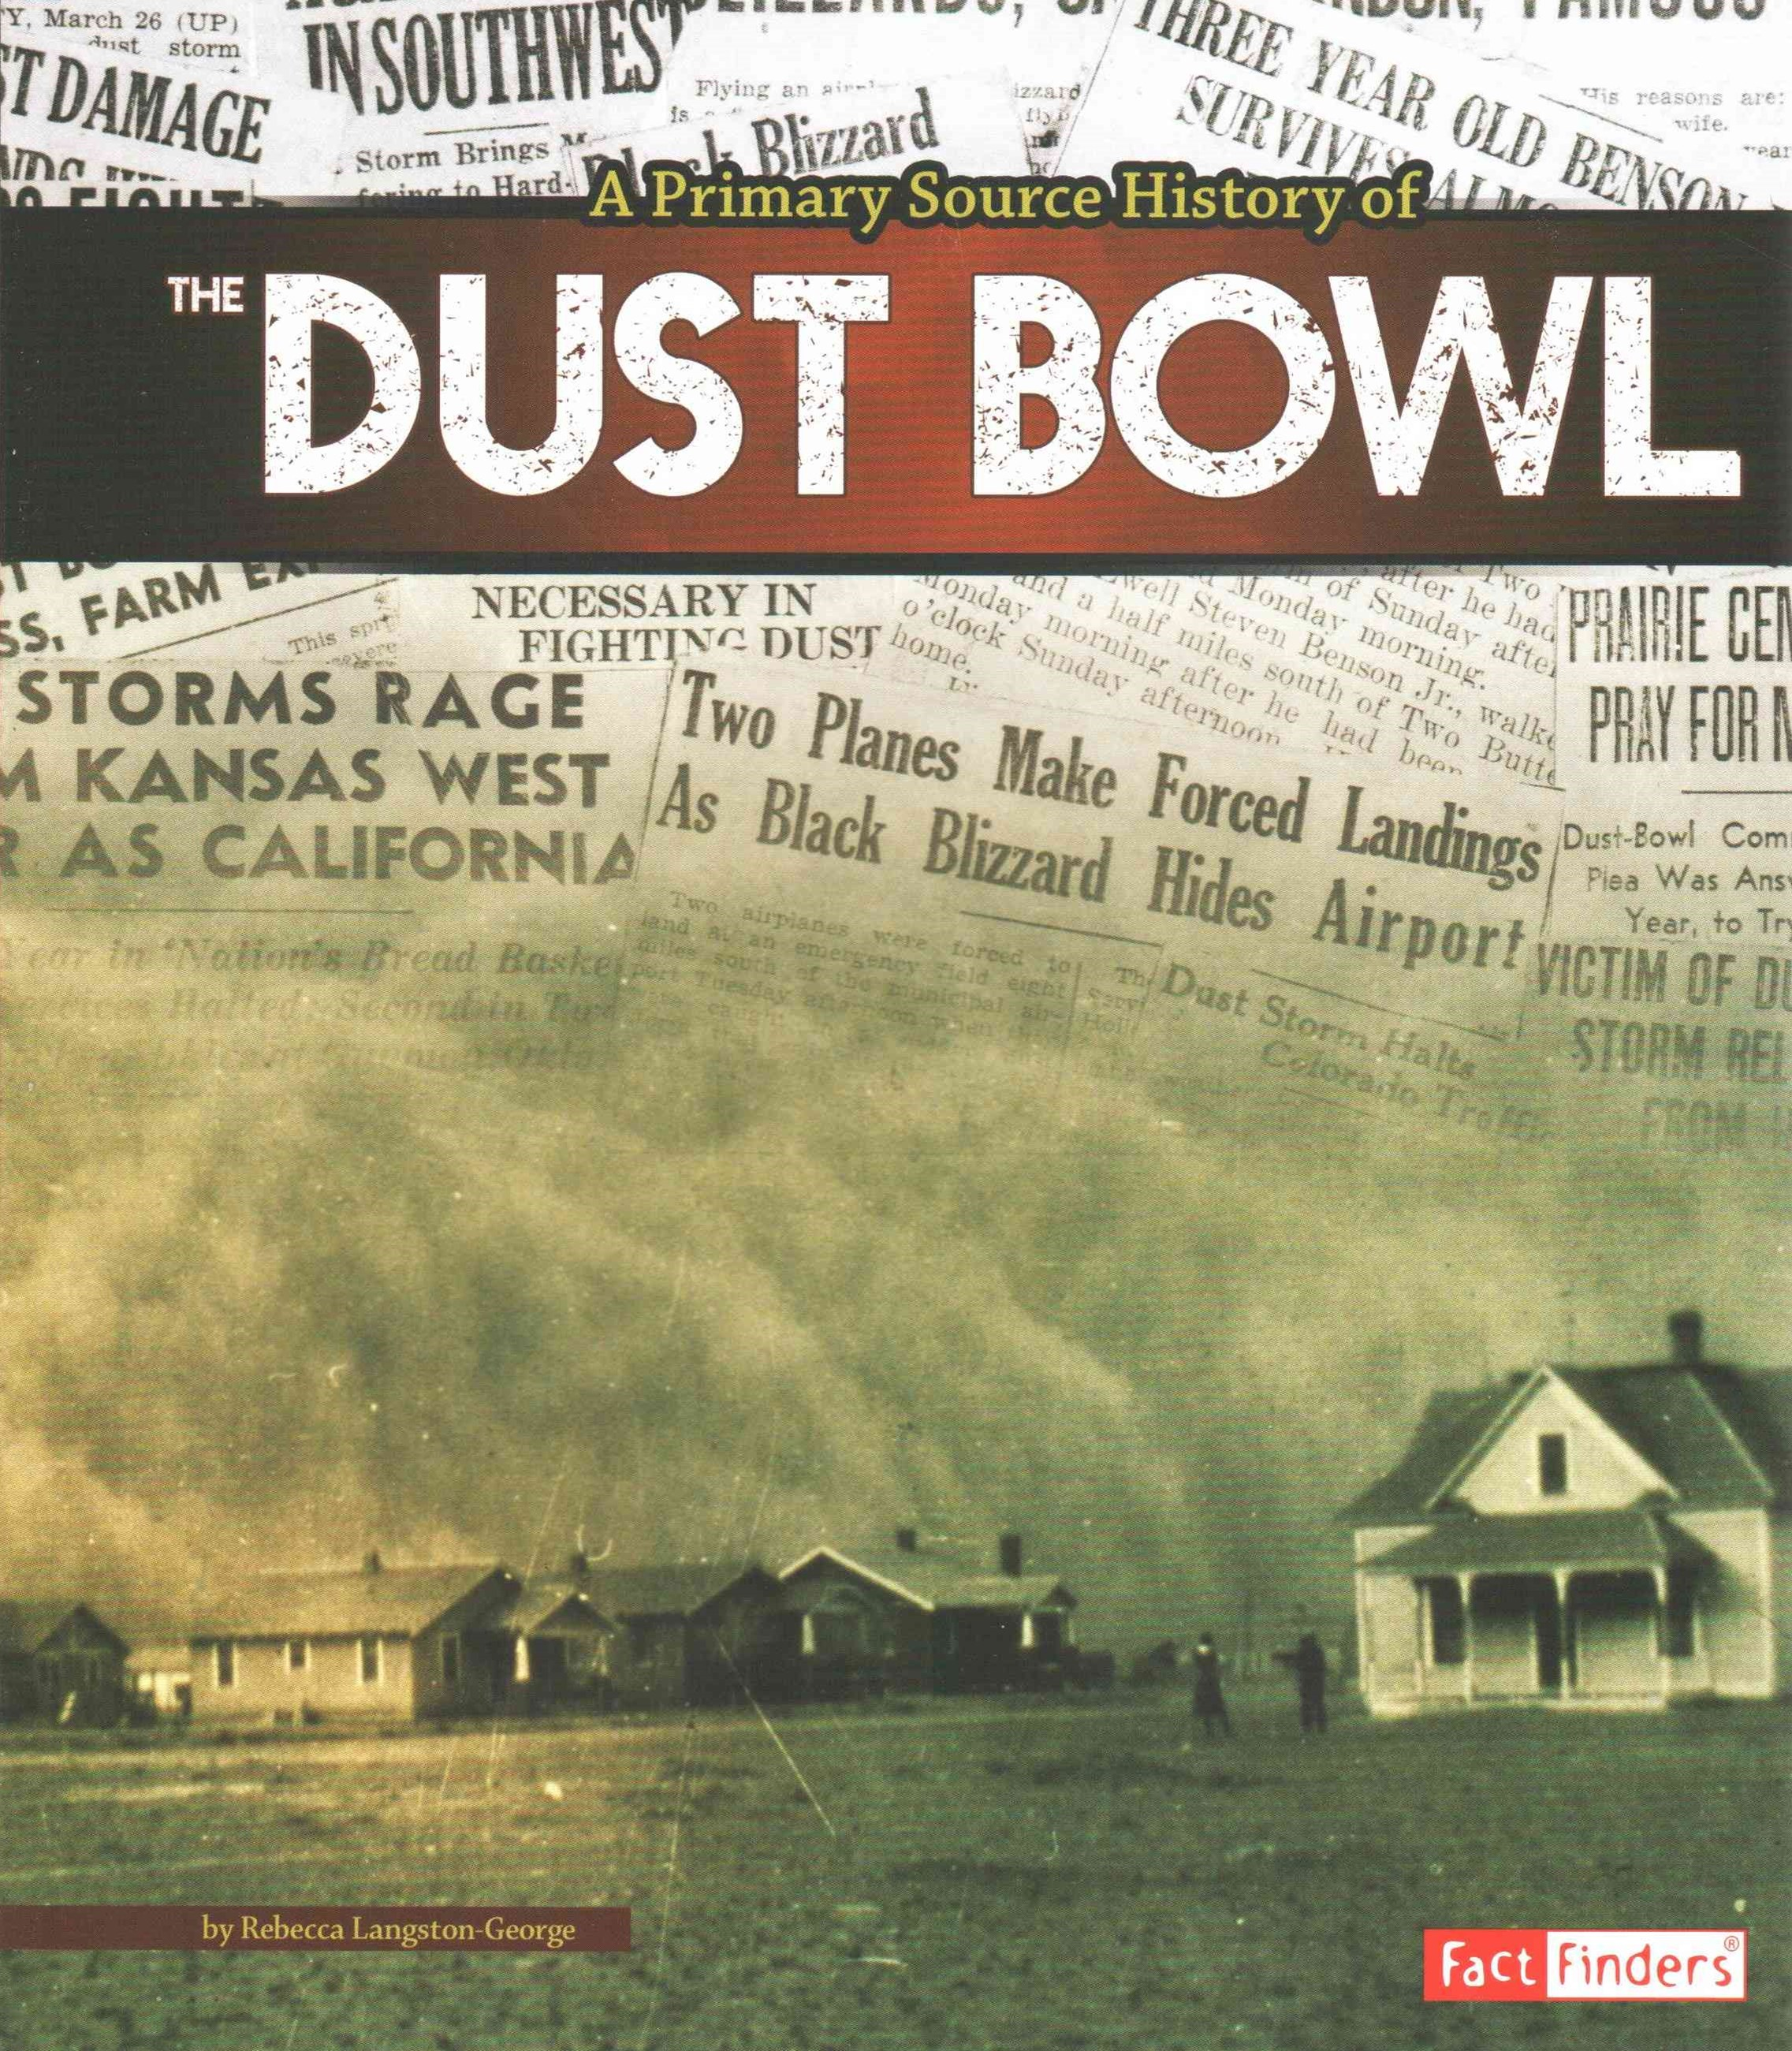 A Primary Source History of the Dust Bowl